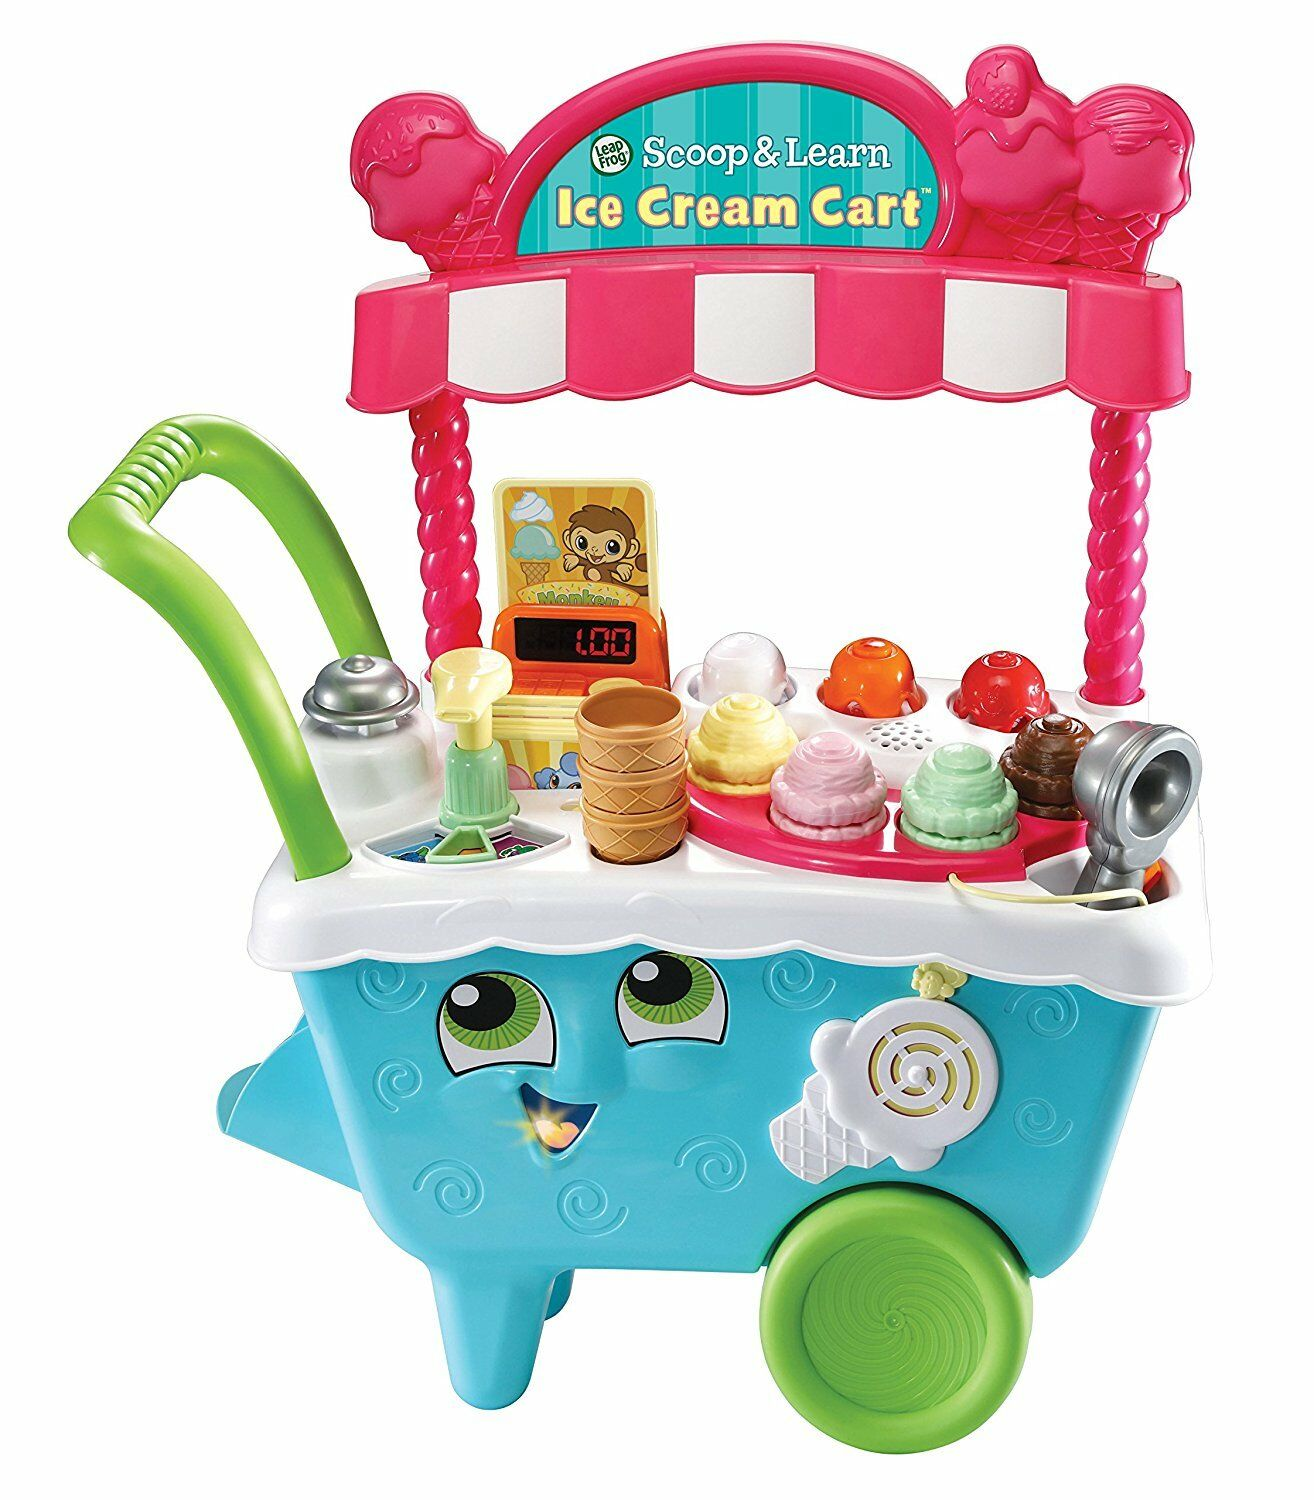 LeapFrog Scoop & Learn Ice Cream voituret  Leap Frog Iced Cream Stand  BRAND nouveau